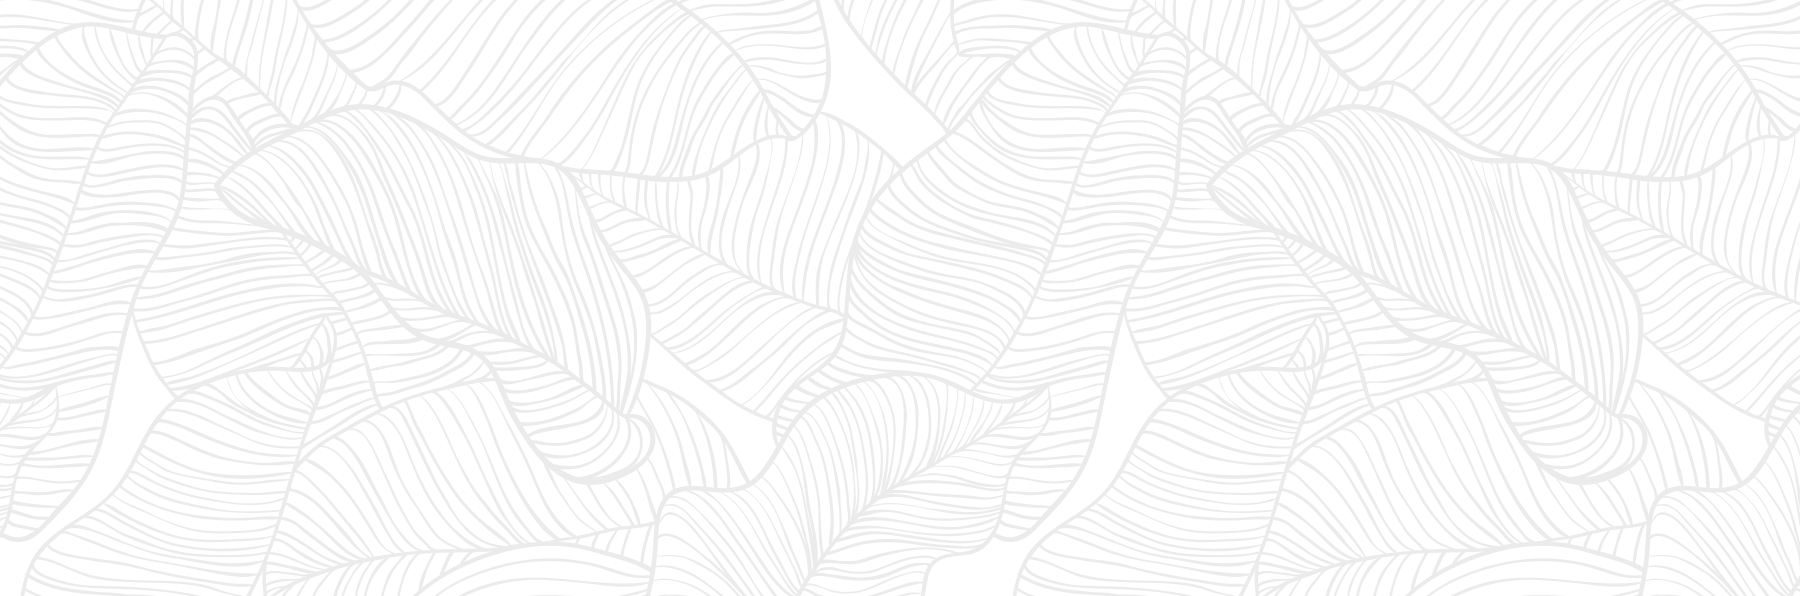 Brand pattern for health and wellness company